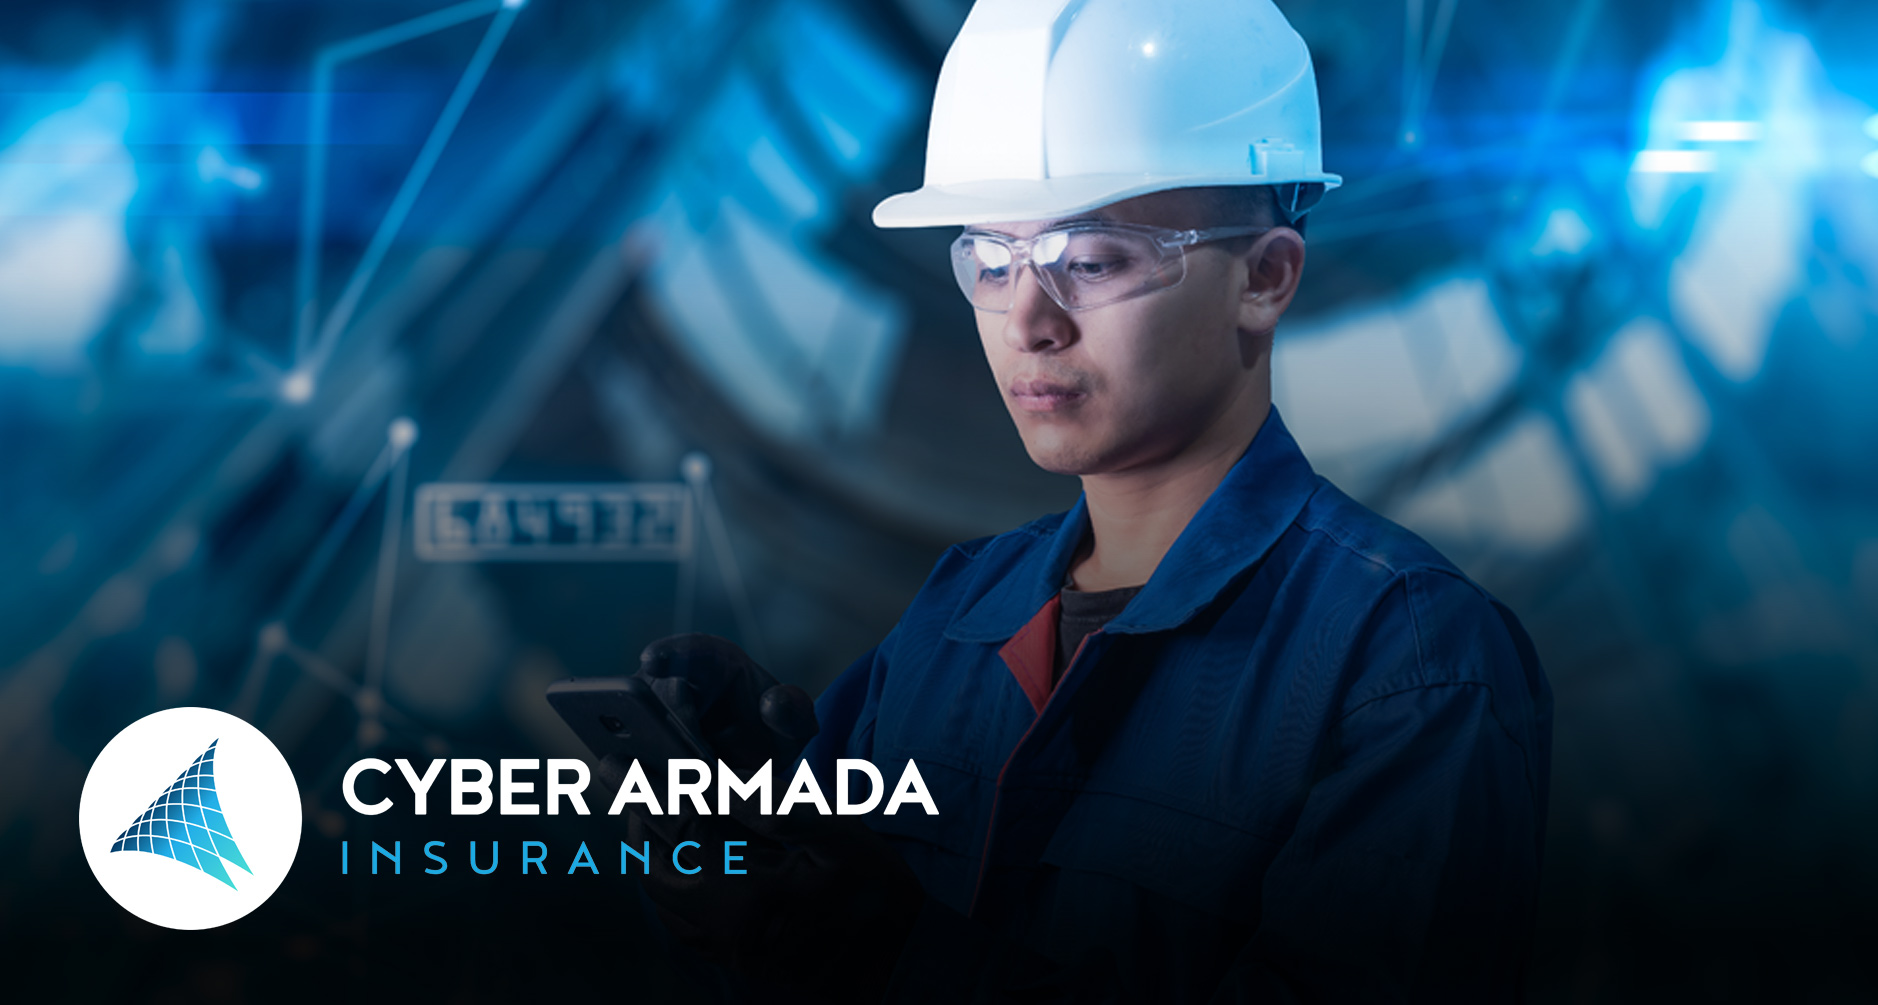 Manufacturers Need Cyber Insurance When Impacted by a Cyber Loss